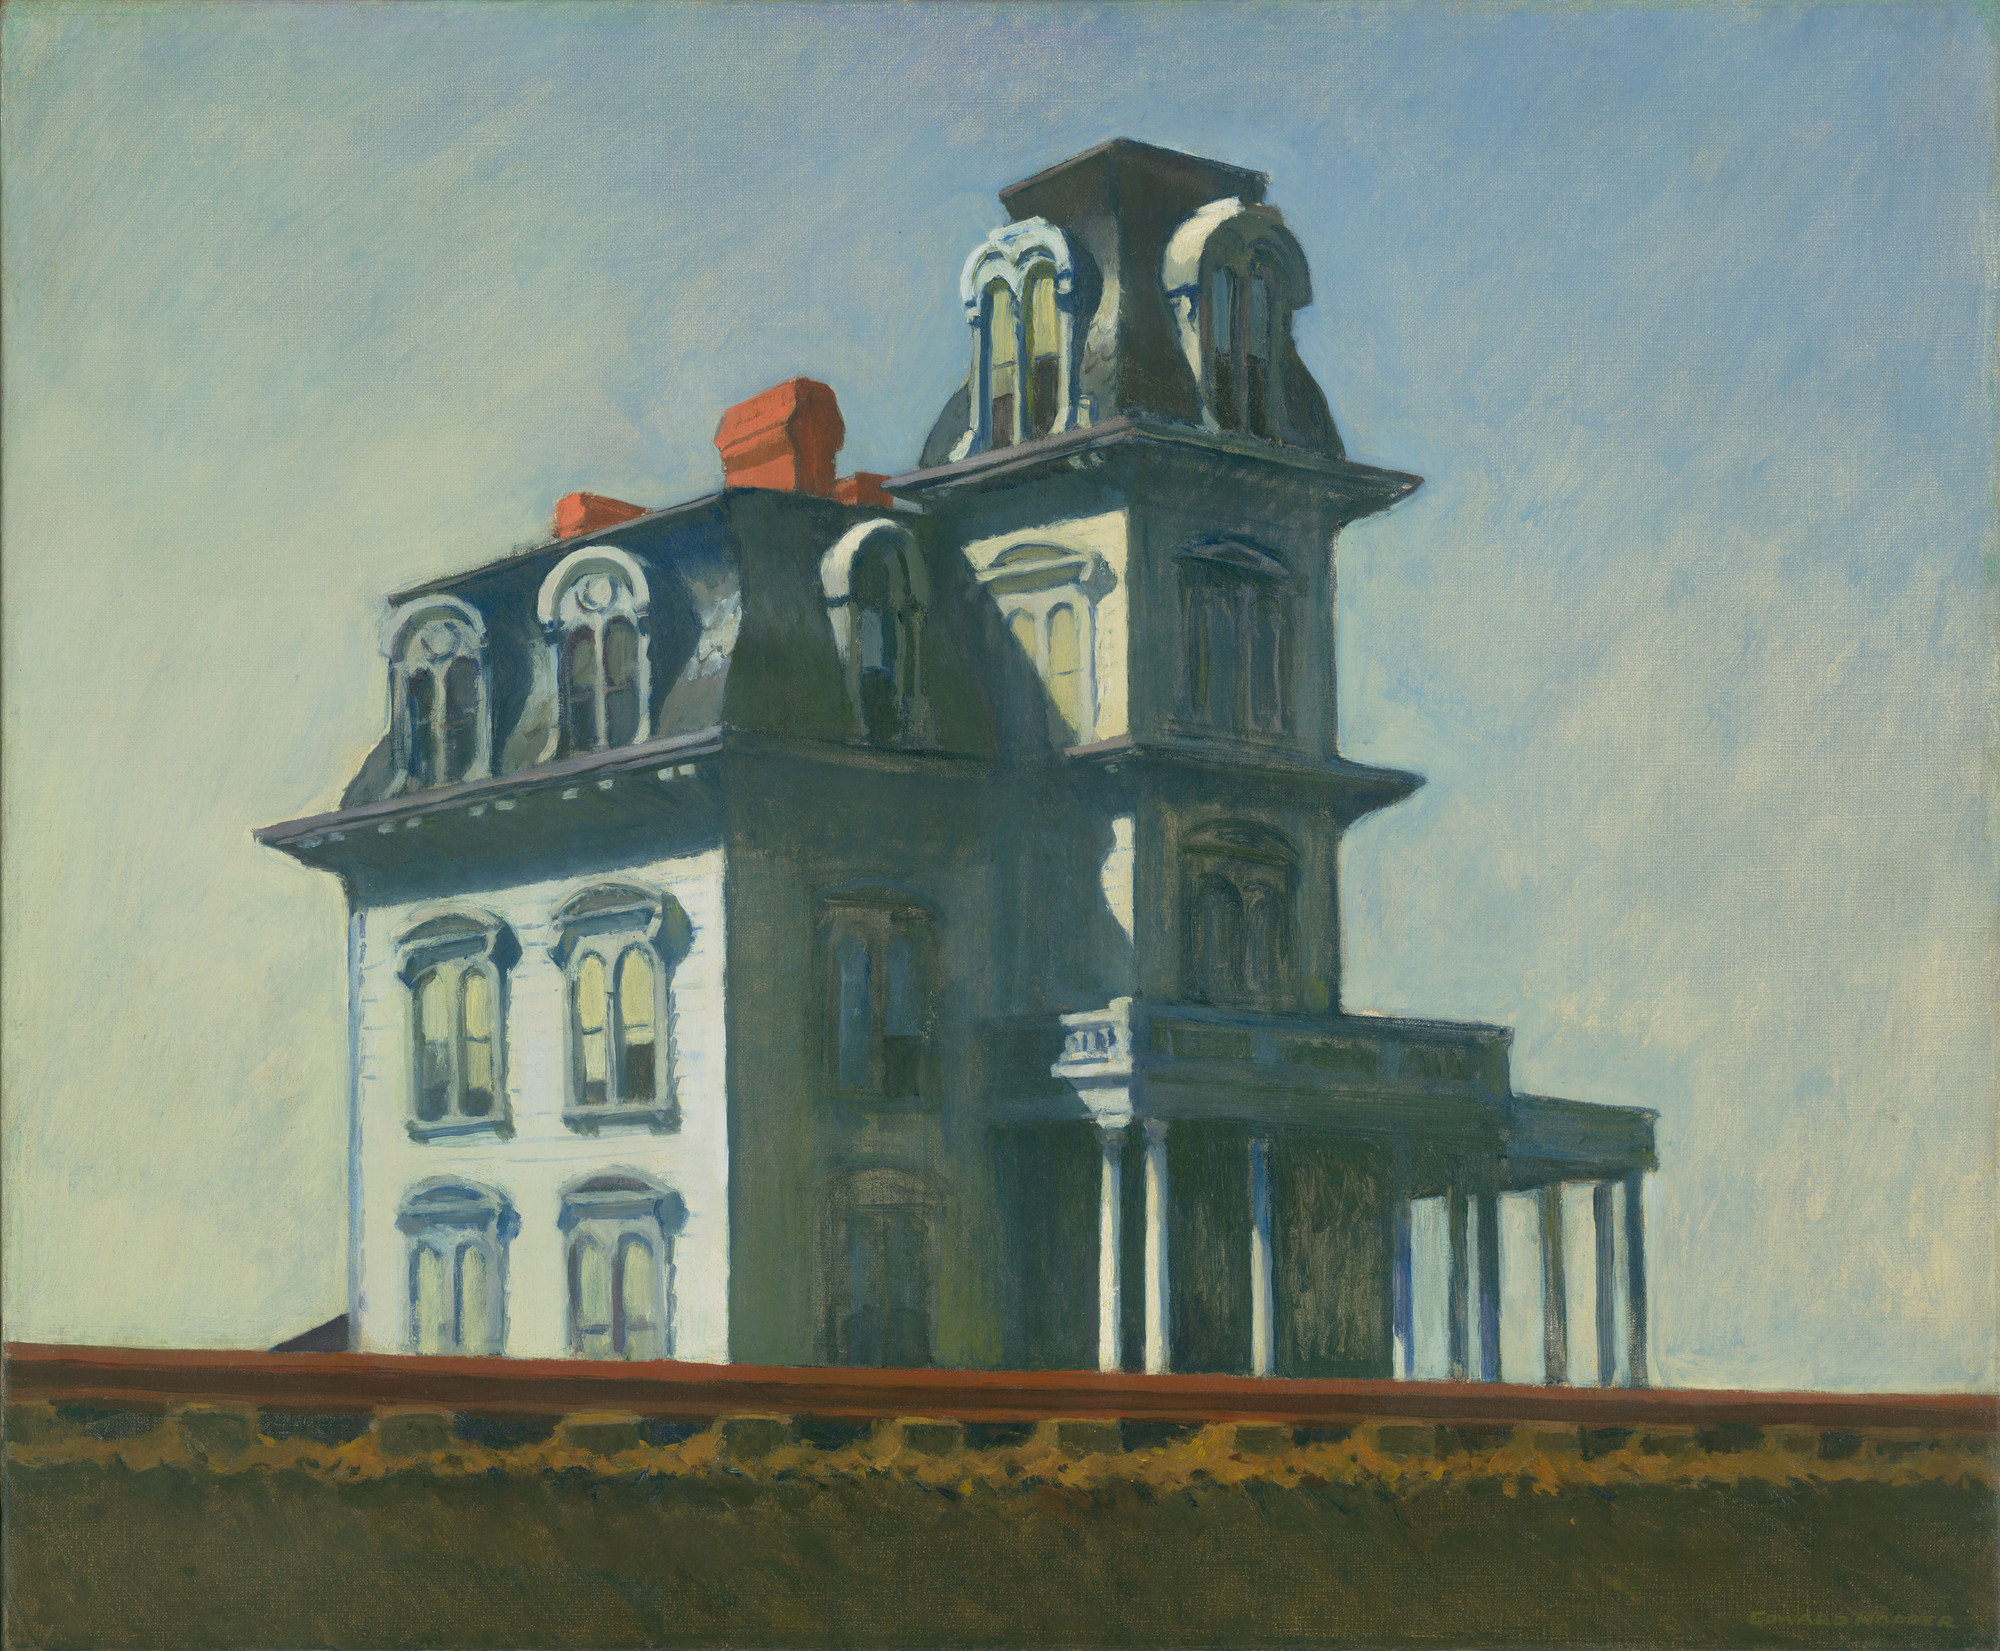 Edward Hopper. House by the Railroad. 1925. Oil on canvas, 24 × 29″ (61 × 73.7 cm). The Museum of Modern Art, New York. Given anonymously. Digital Image © The Museum of Modern Art, New York, Digital Imaging Studio